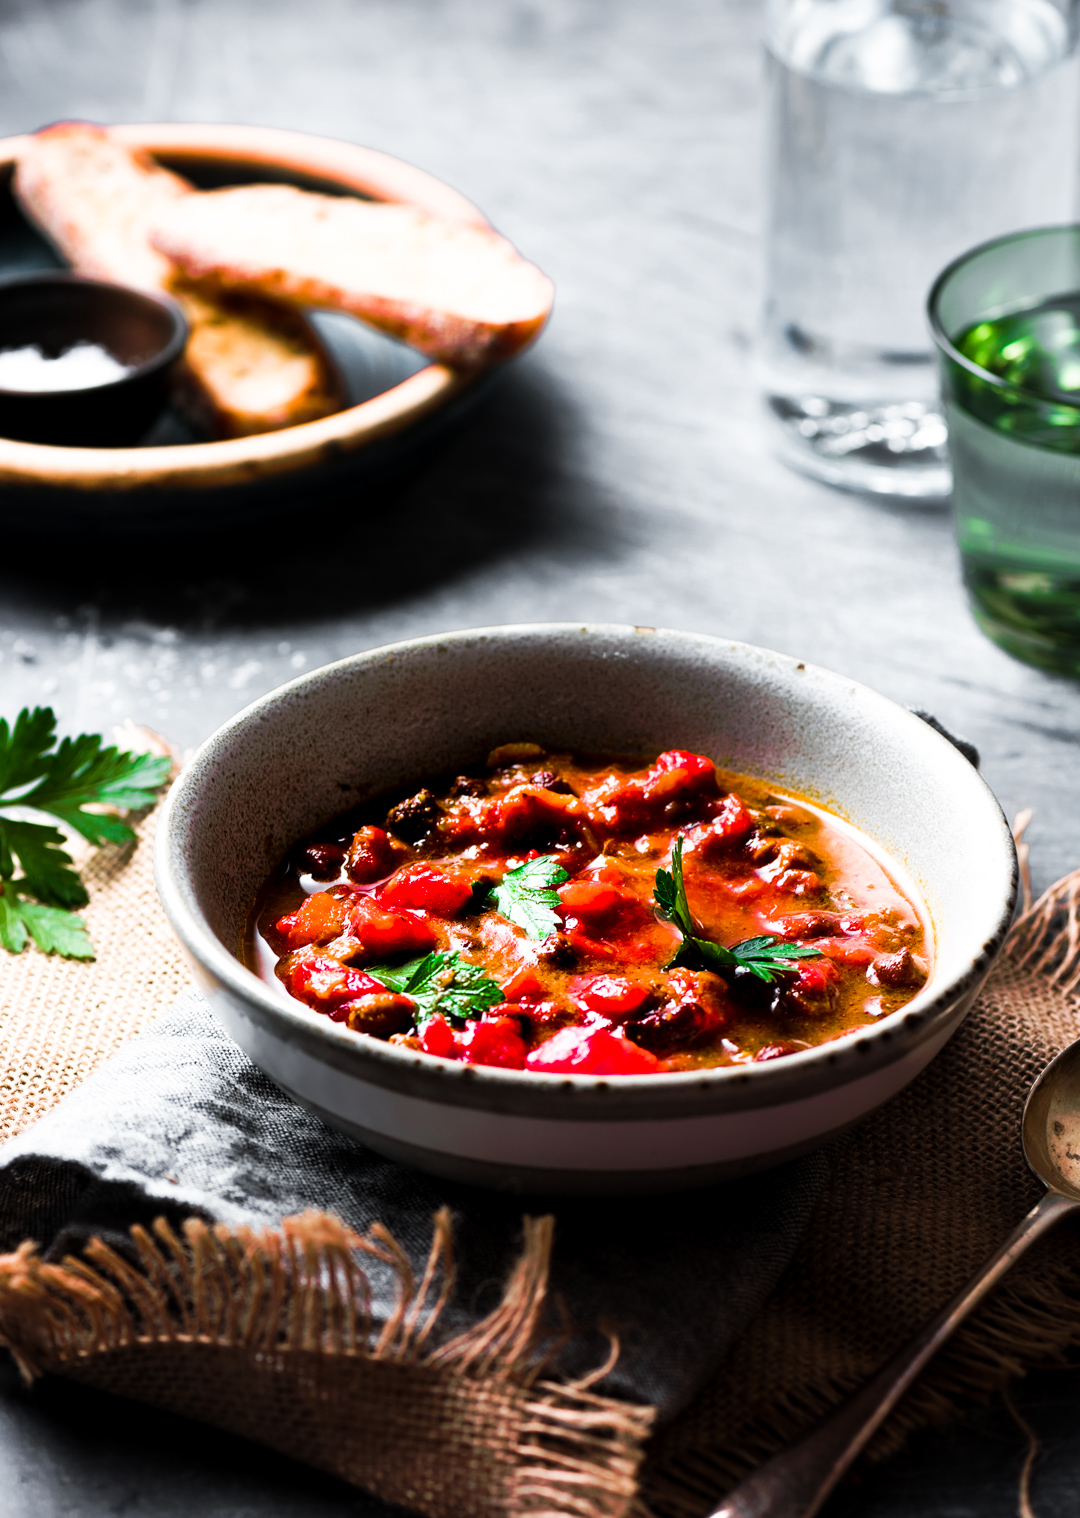 Winter is here and what you need is just to snuggle up and enjoy this hearty vibrant warm barley bean soup. A truly comforting soup.